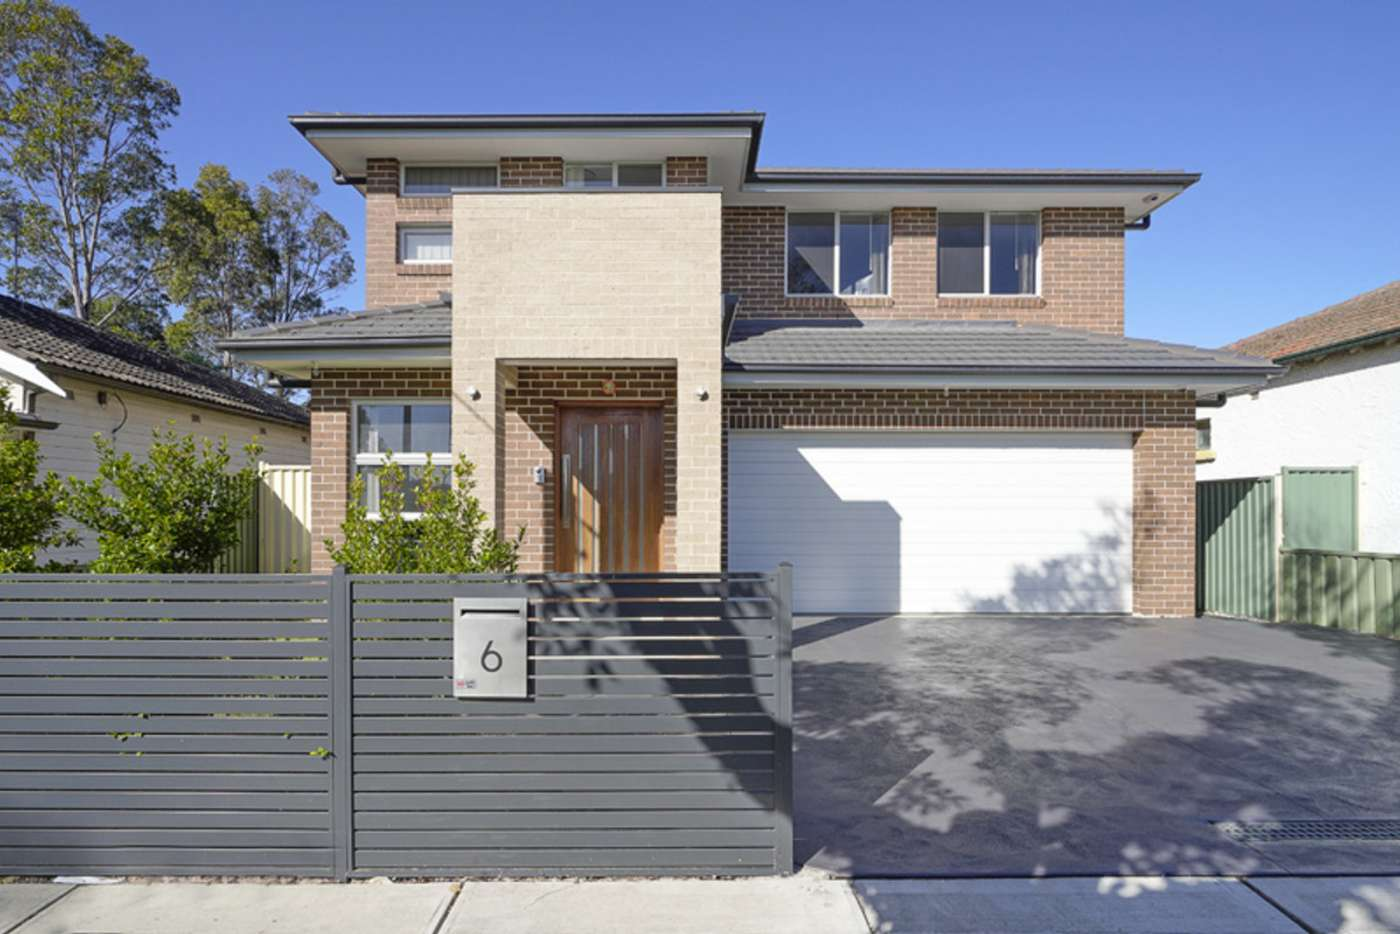 Main view of Homely house listing, 6 Clissold Parade, Campsie NSW 2194